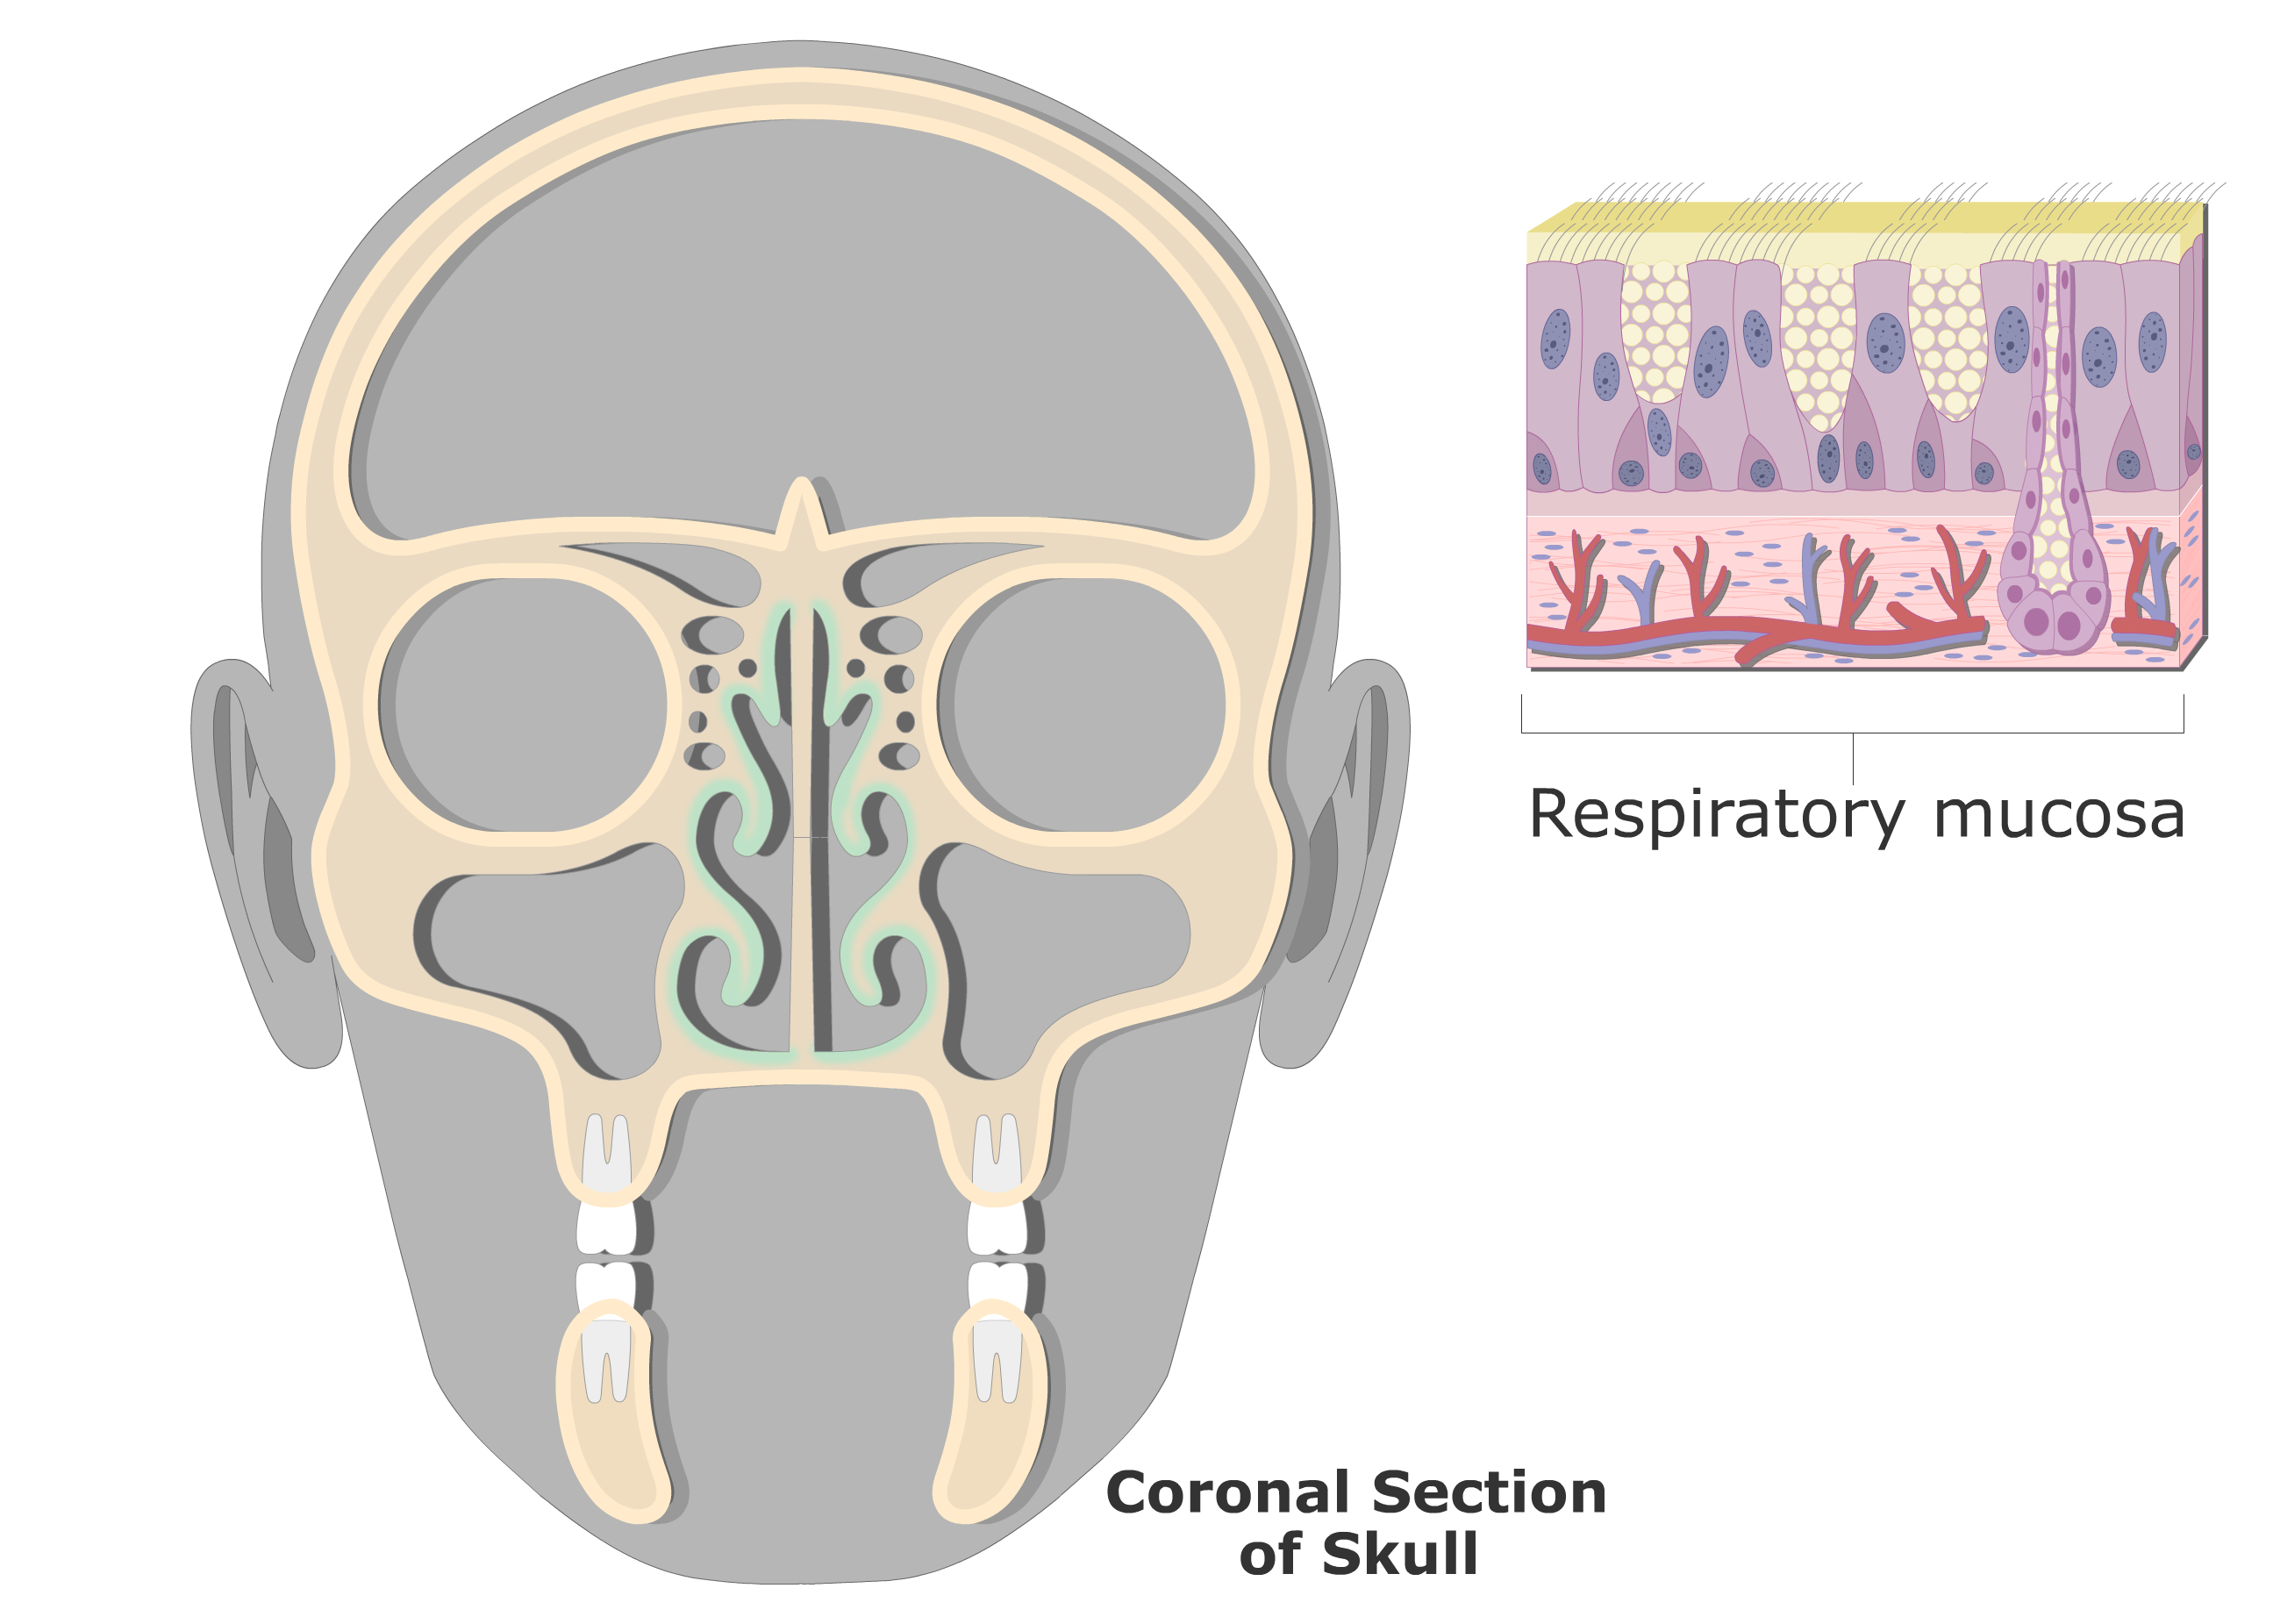 Coronal View of the Respiratory Mucosa and highlighted